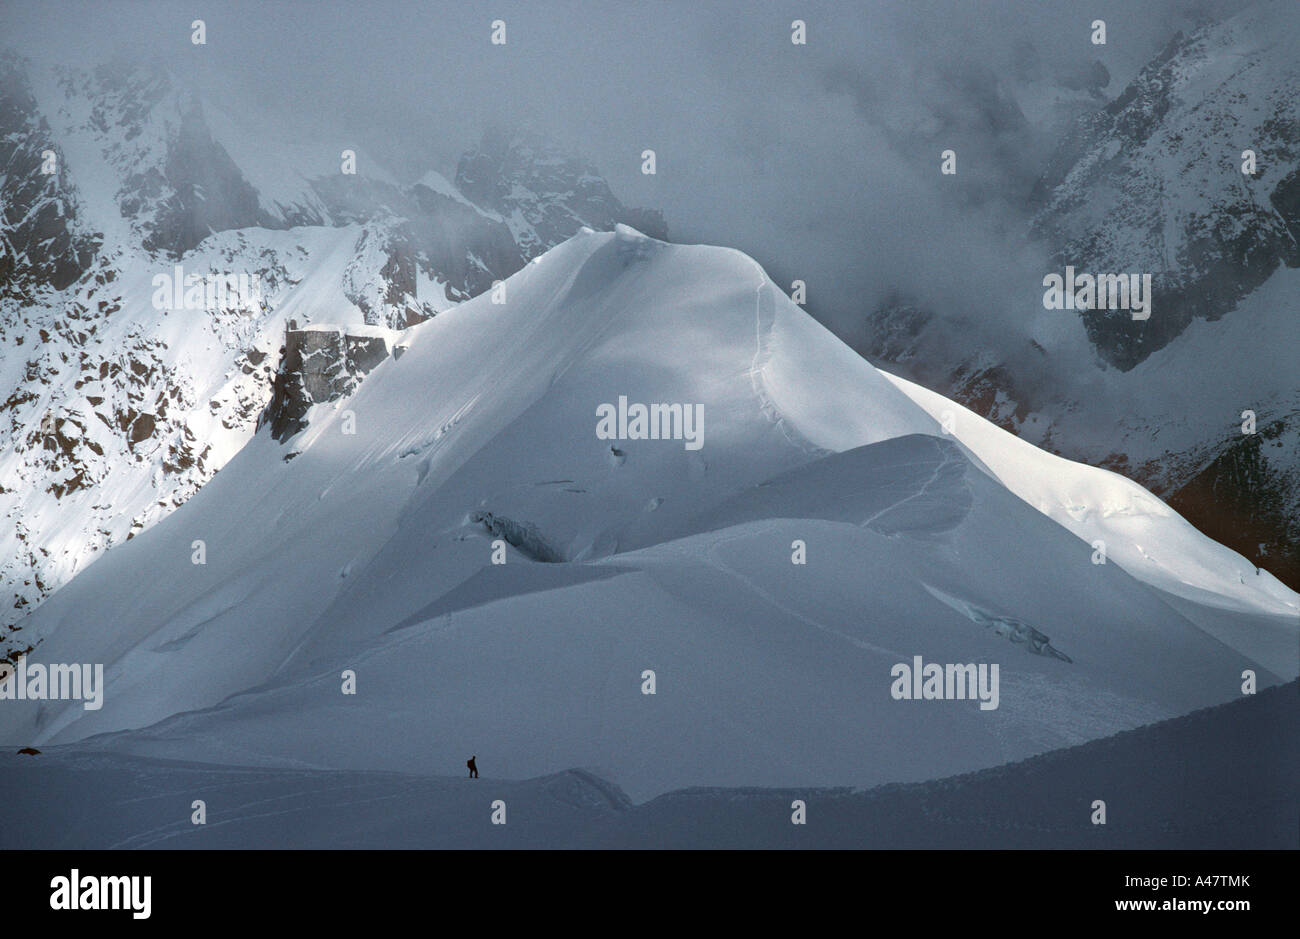 a-lone-climber-high-in-the-french-alps-A